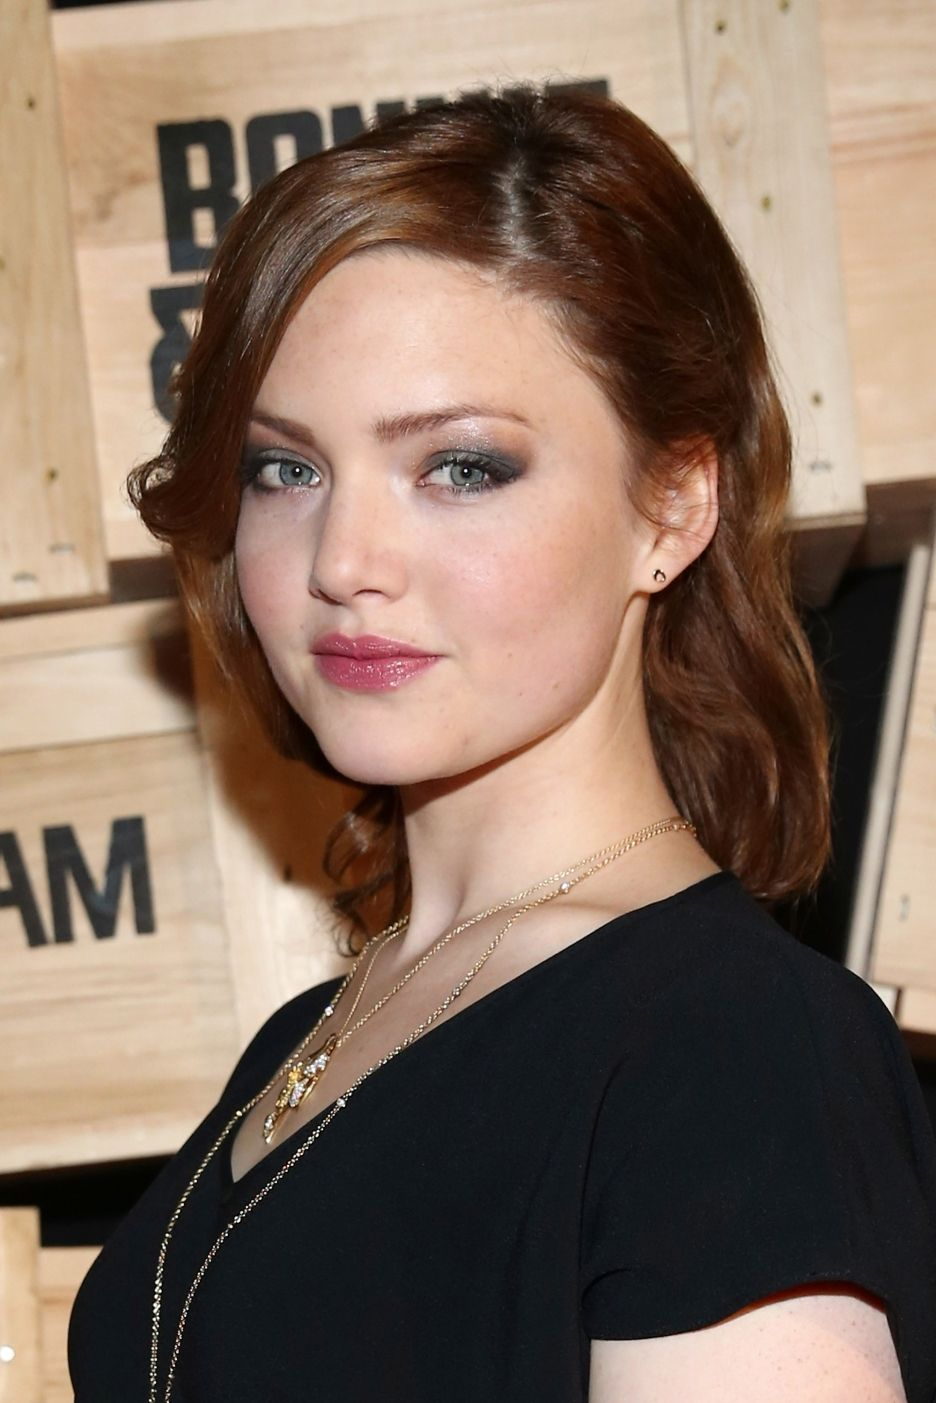 Holliday Grainger (born 1988) Holliday Grainger (born 1988) new images